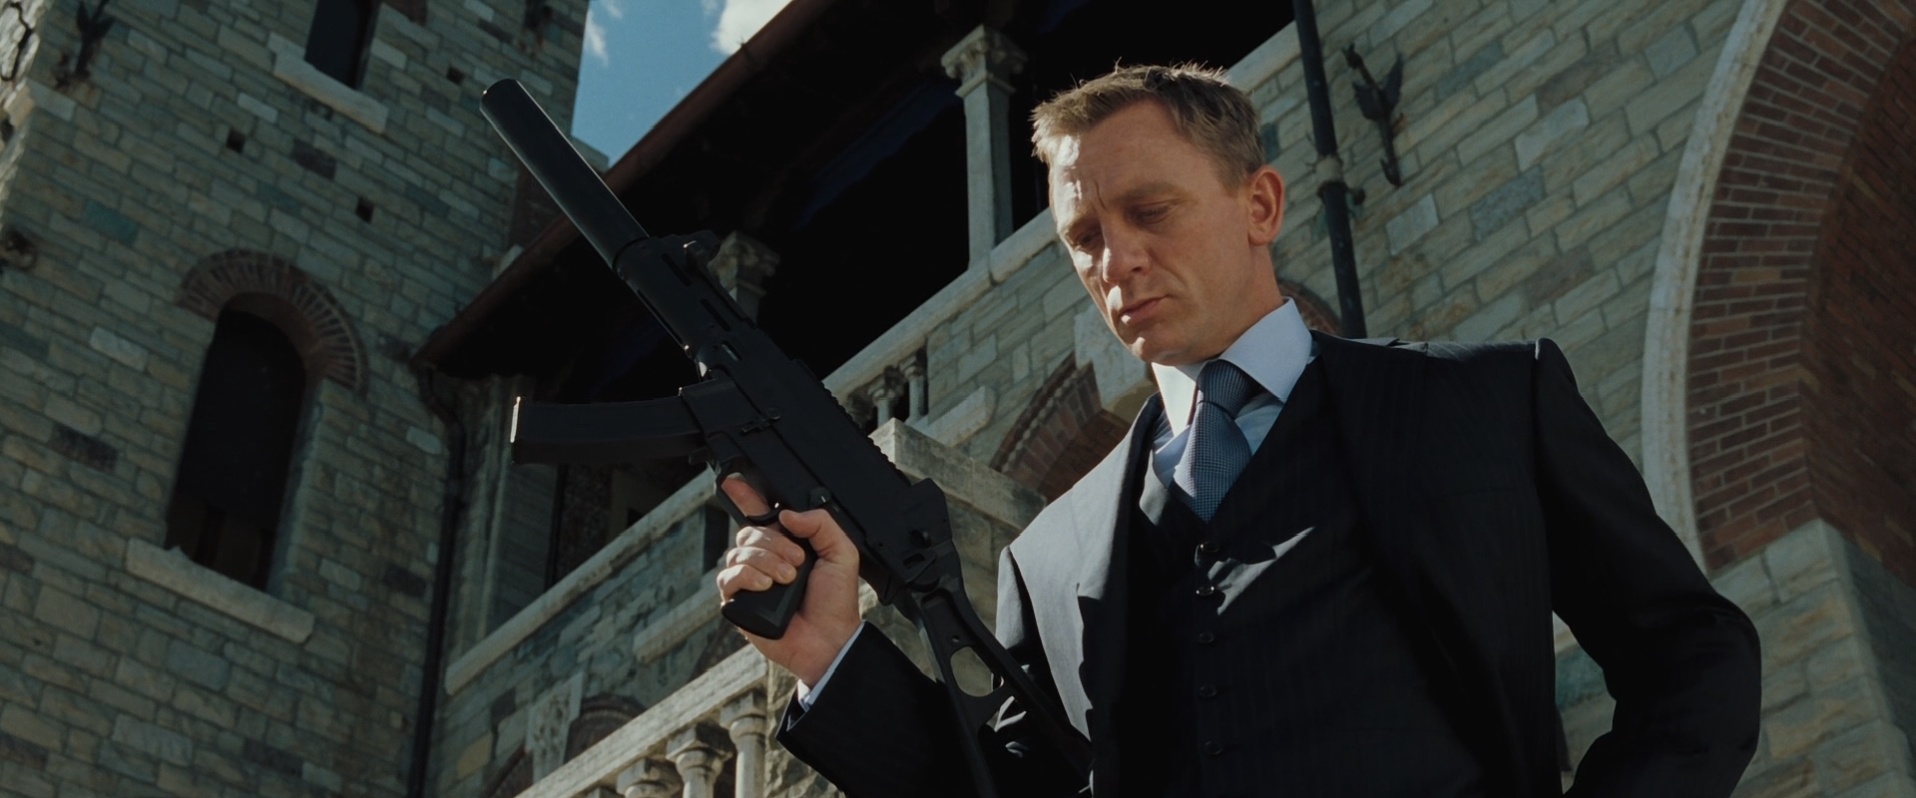 stile persuasivo il fascino di James Bond